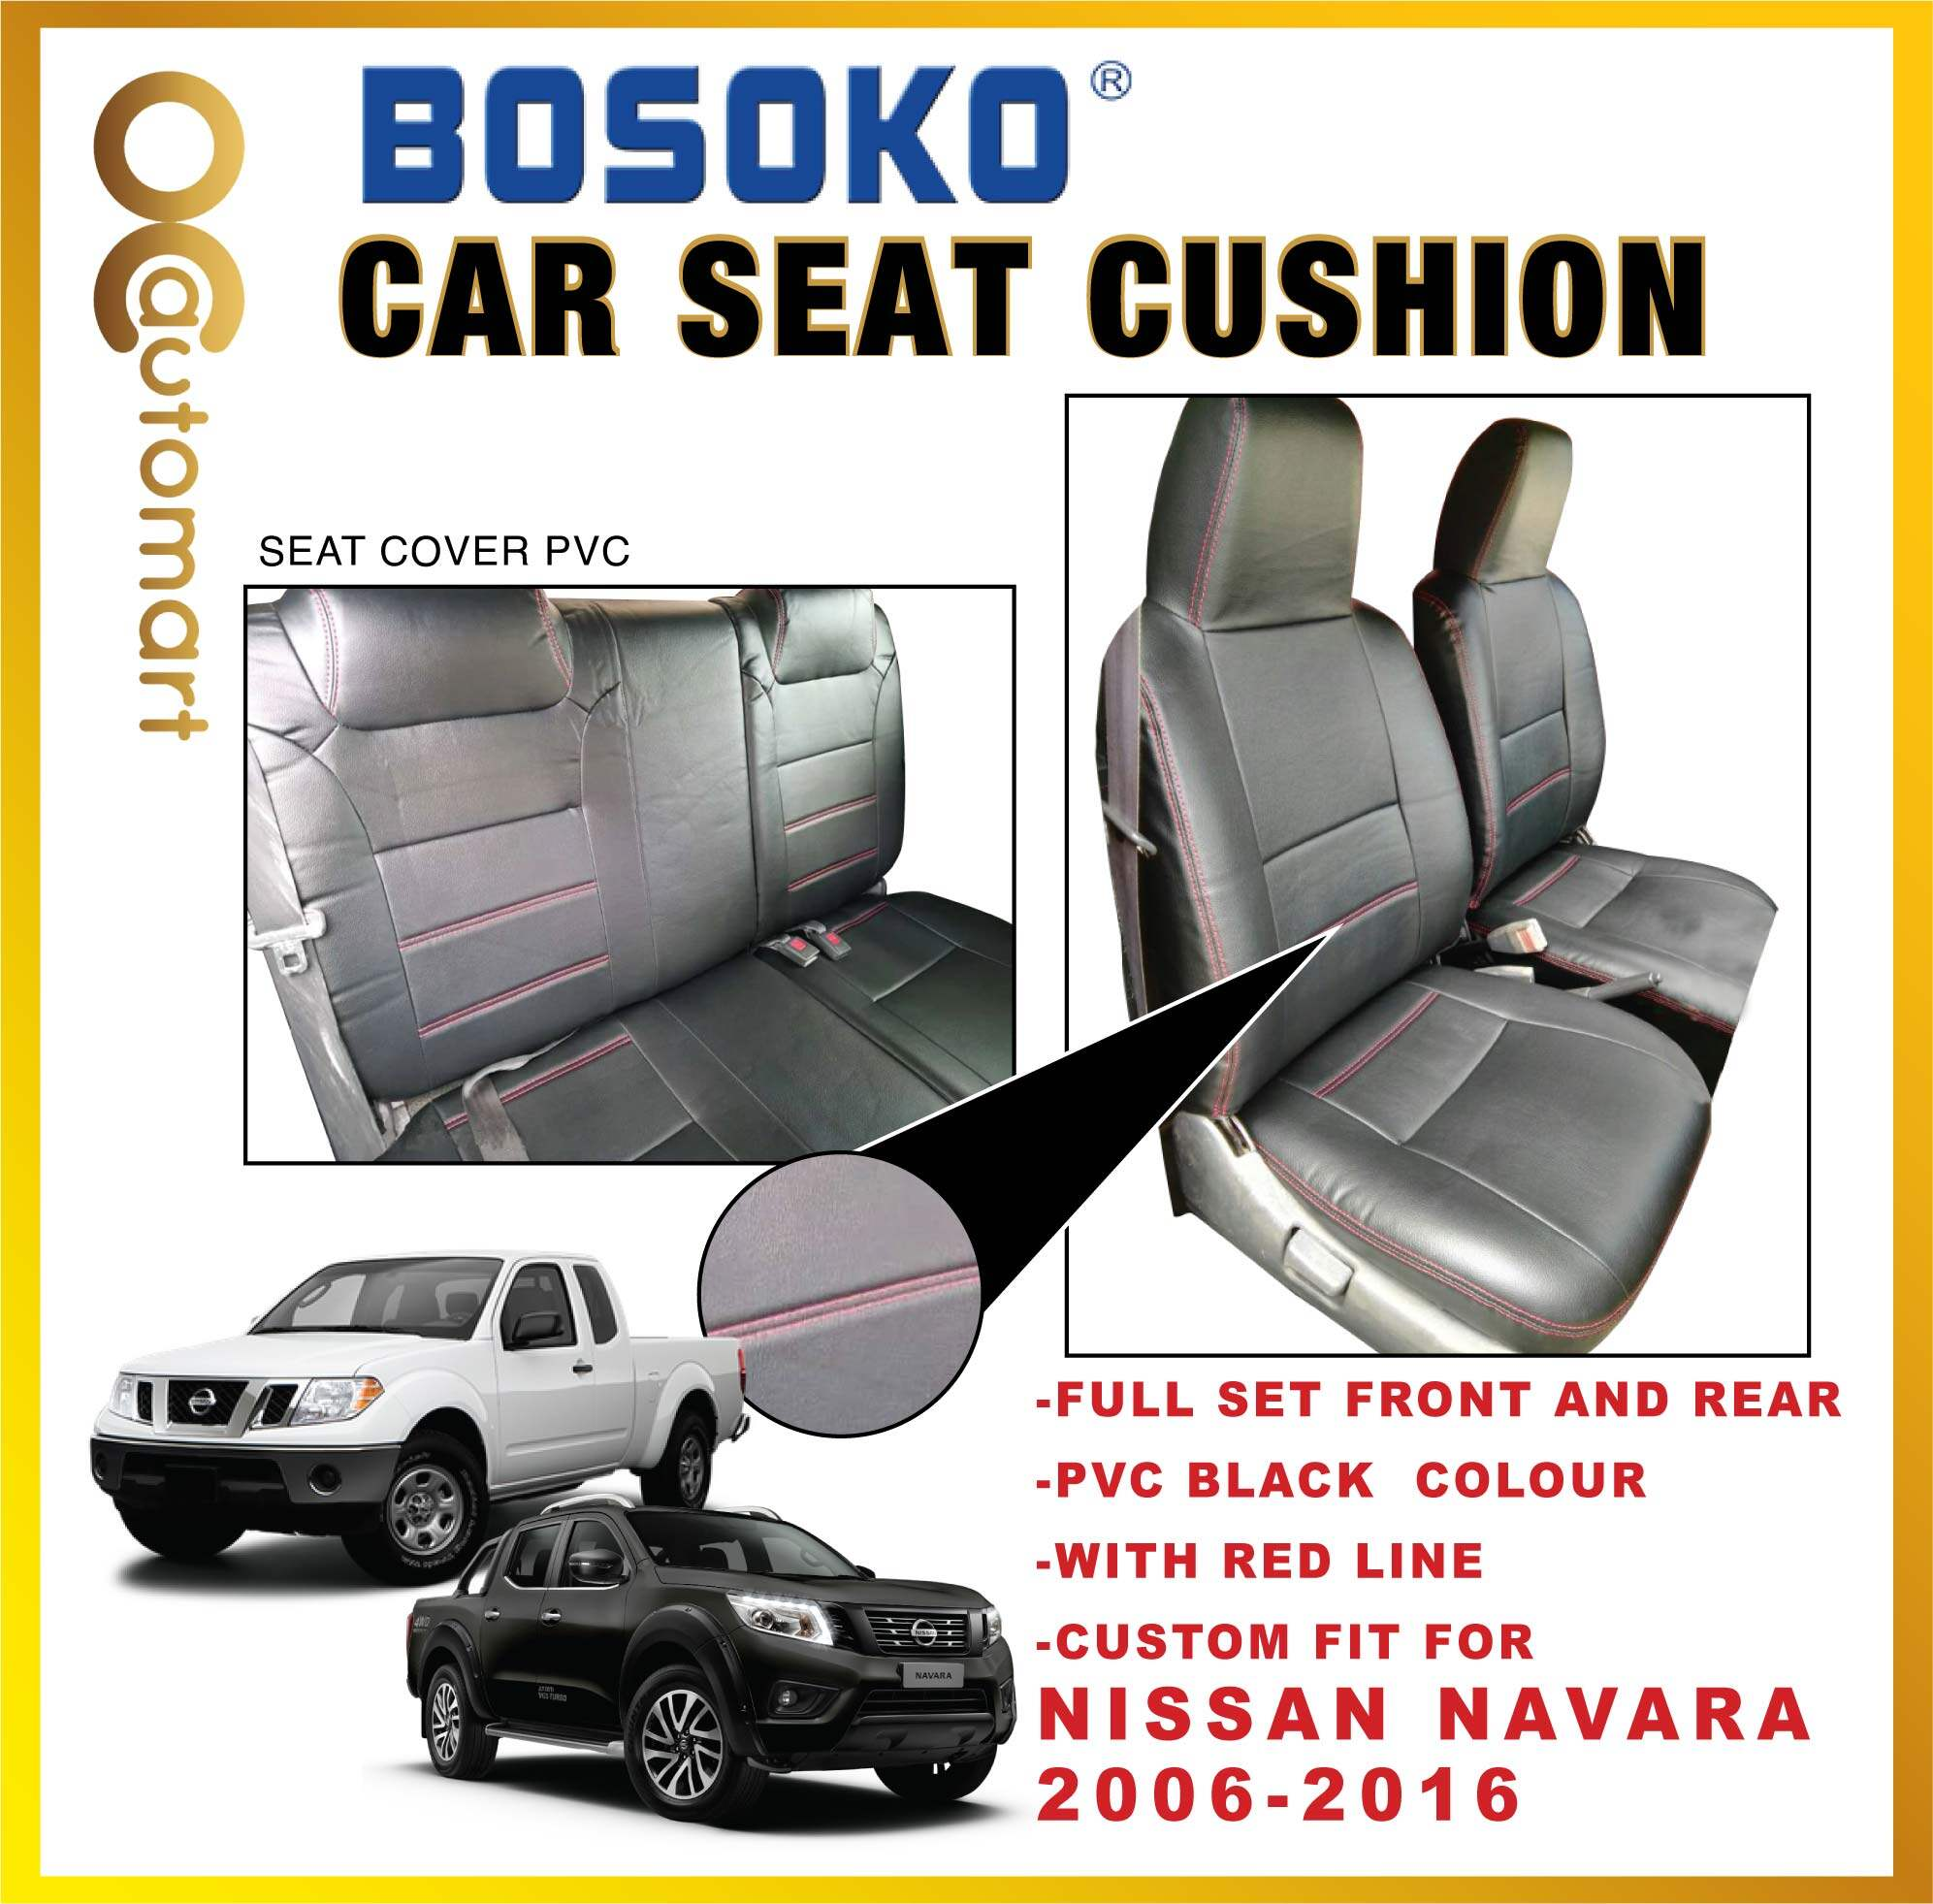 Nissan Navara Yr 2009-2016 - Car Seat Cushion Cover PVC Black Colour Shining With Red Line ( Made in Malaysia)